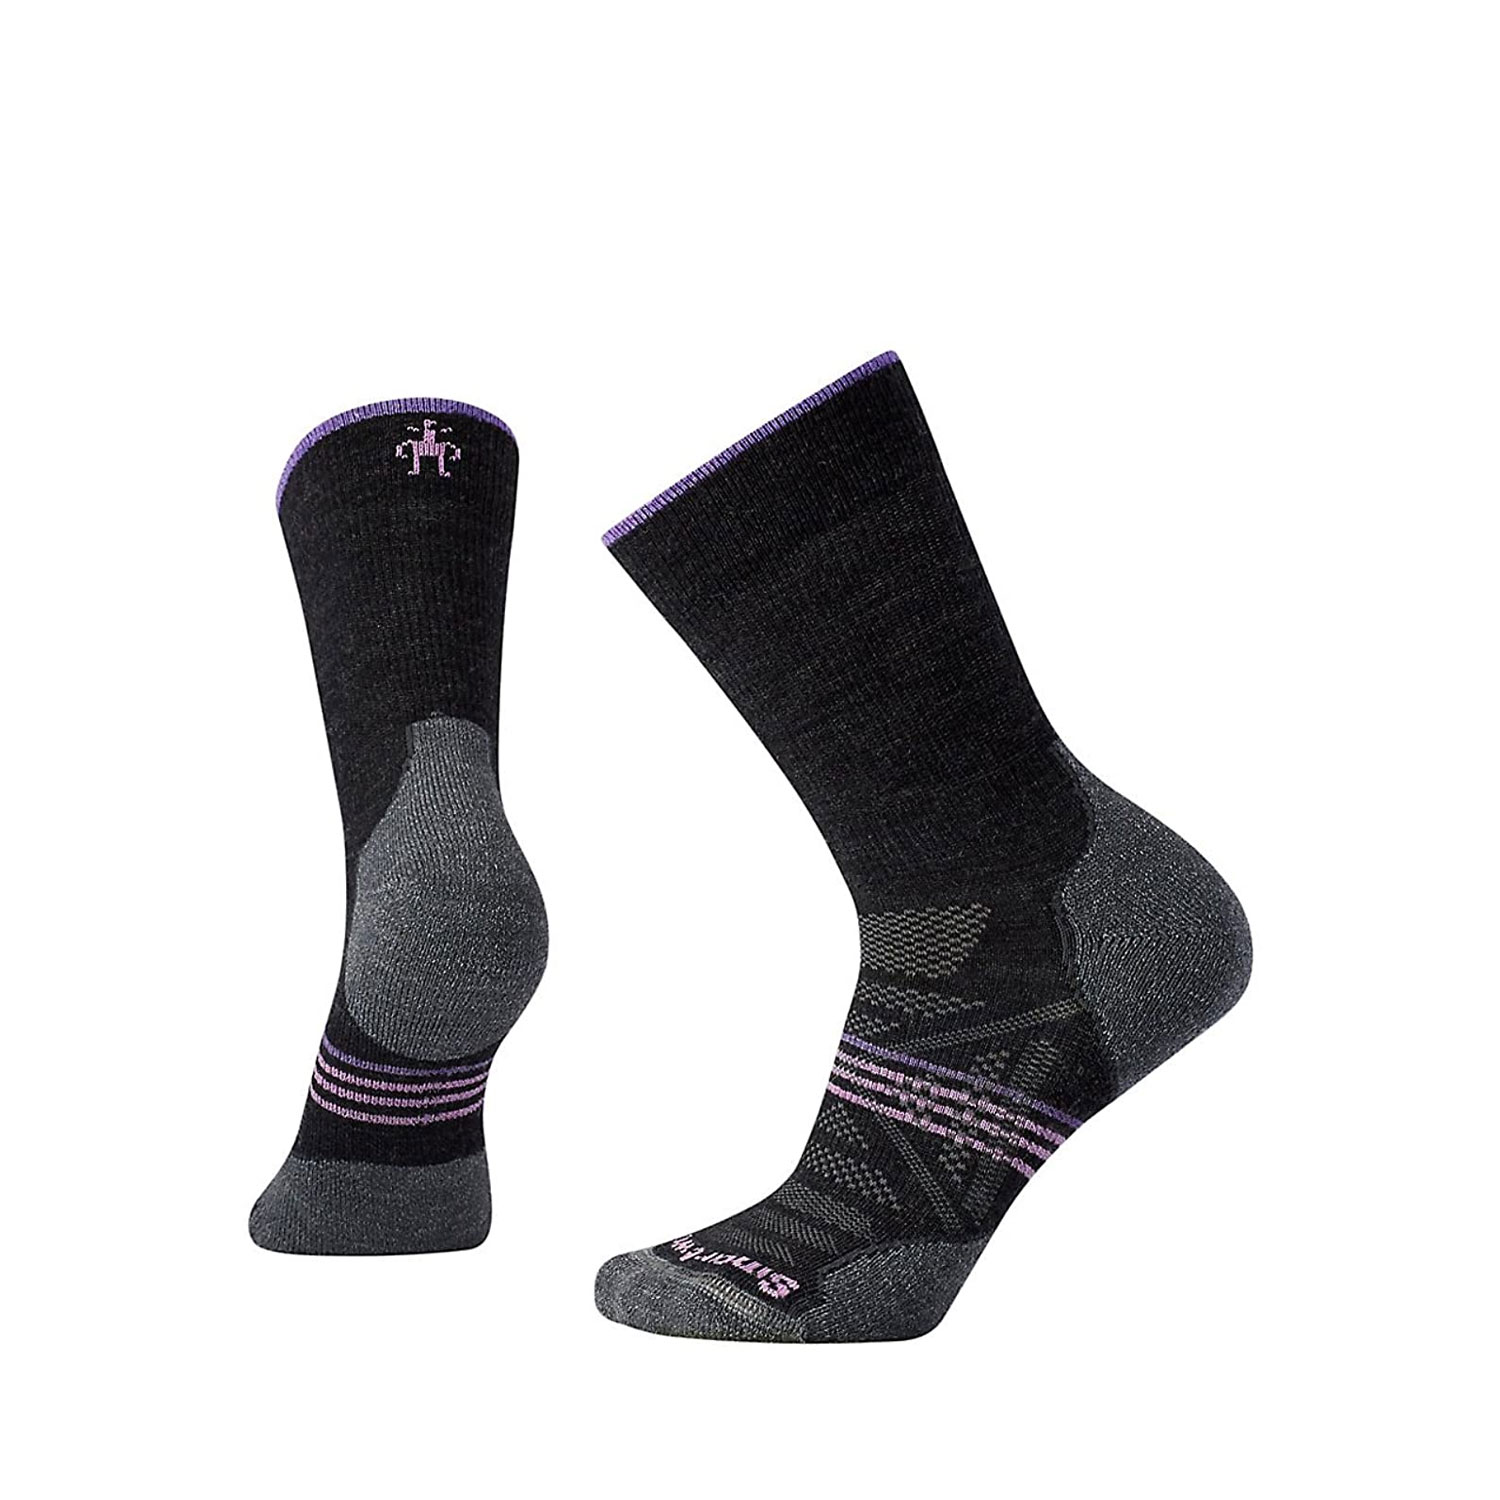 Smartwool Women's PhD® Outdoor Light Hiking Crew Socks